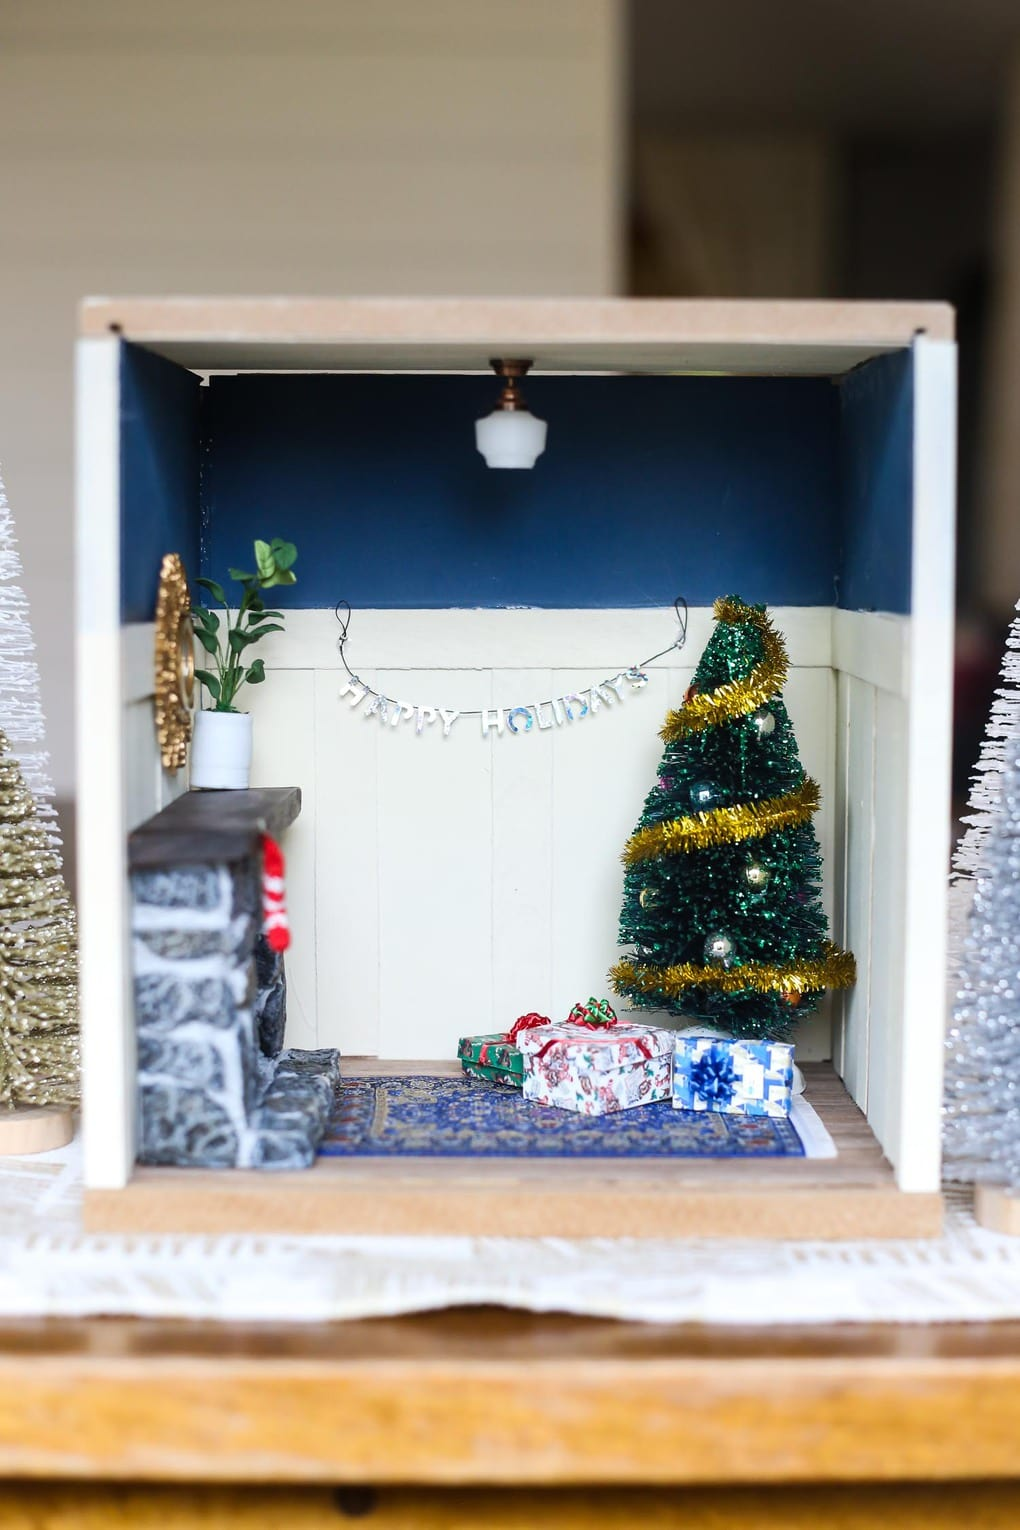 An adorable DIY miniature Christmas vignette for your holiday decorations. It's so fun to create miniature rooms, and this is a great decoration for kids' rooms!